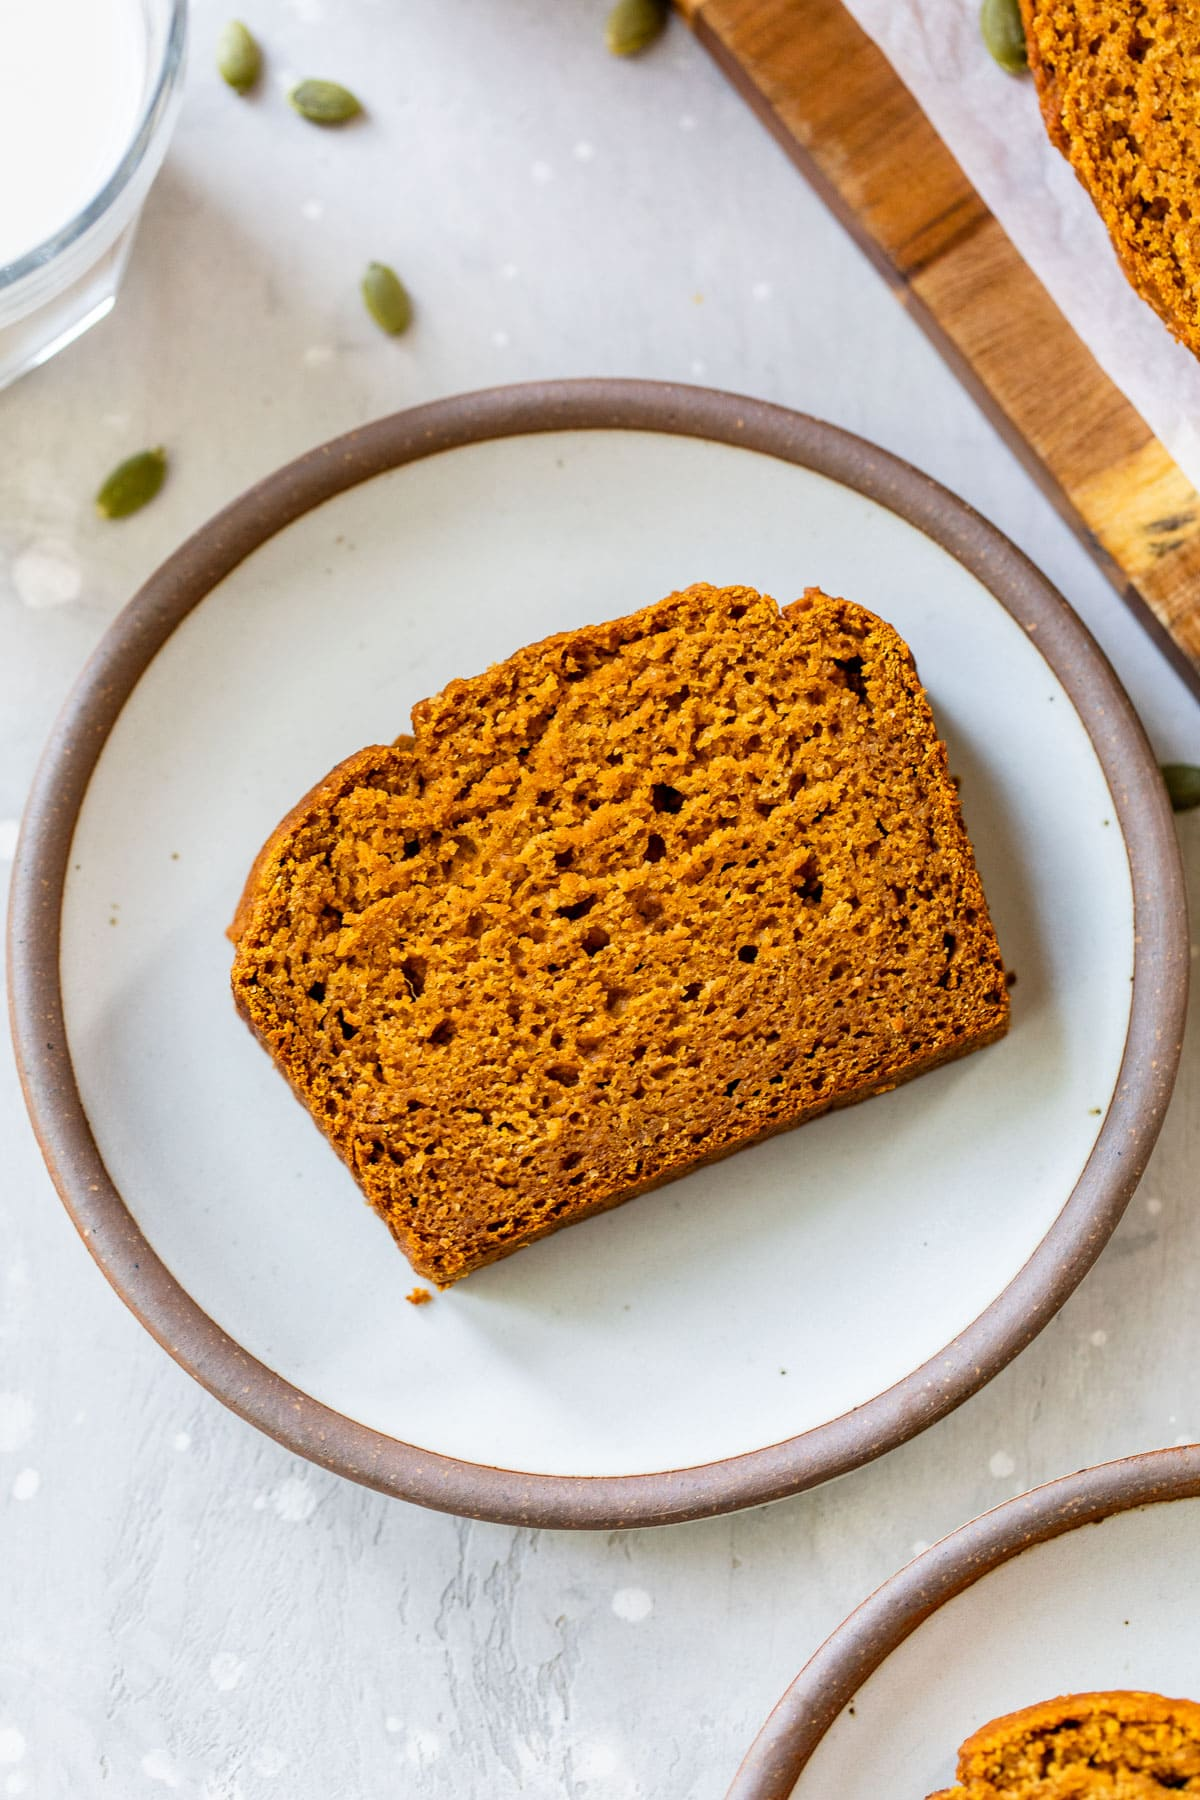 Delicious, moist healthy pumpkin bread. NO BUTTER and NO SUGAR! Just pure pumpkin goodness with a touch of honey. @wellplated.